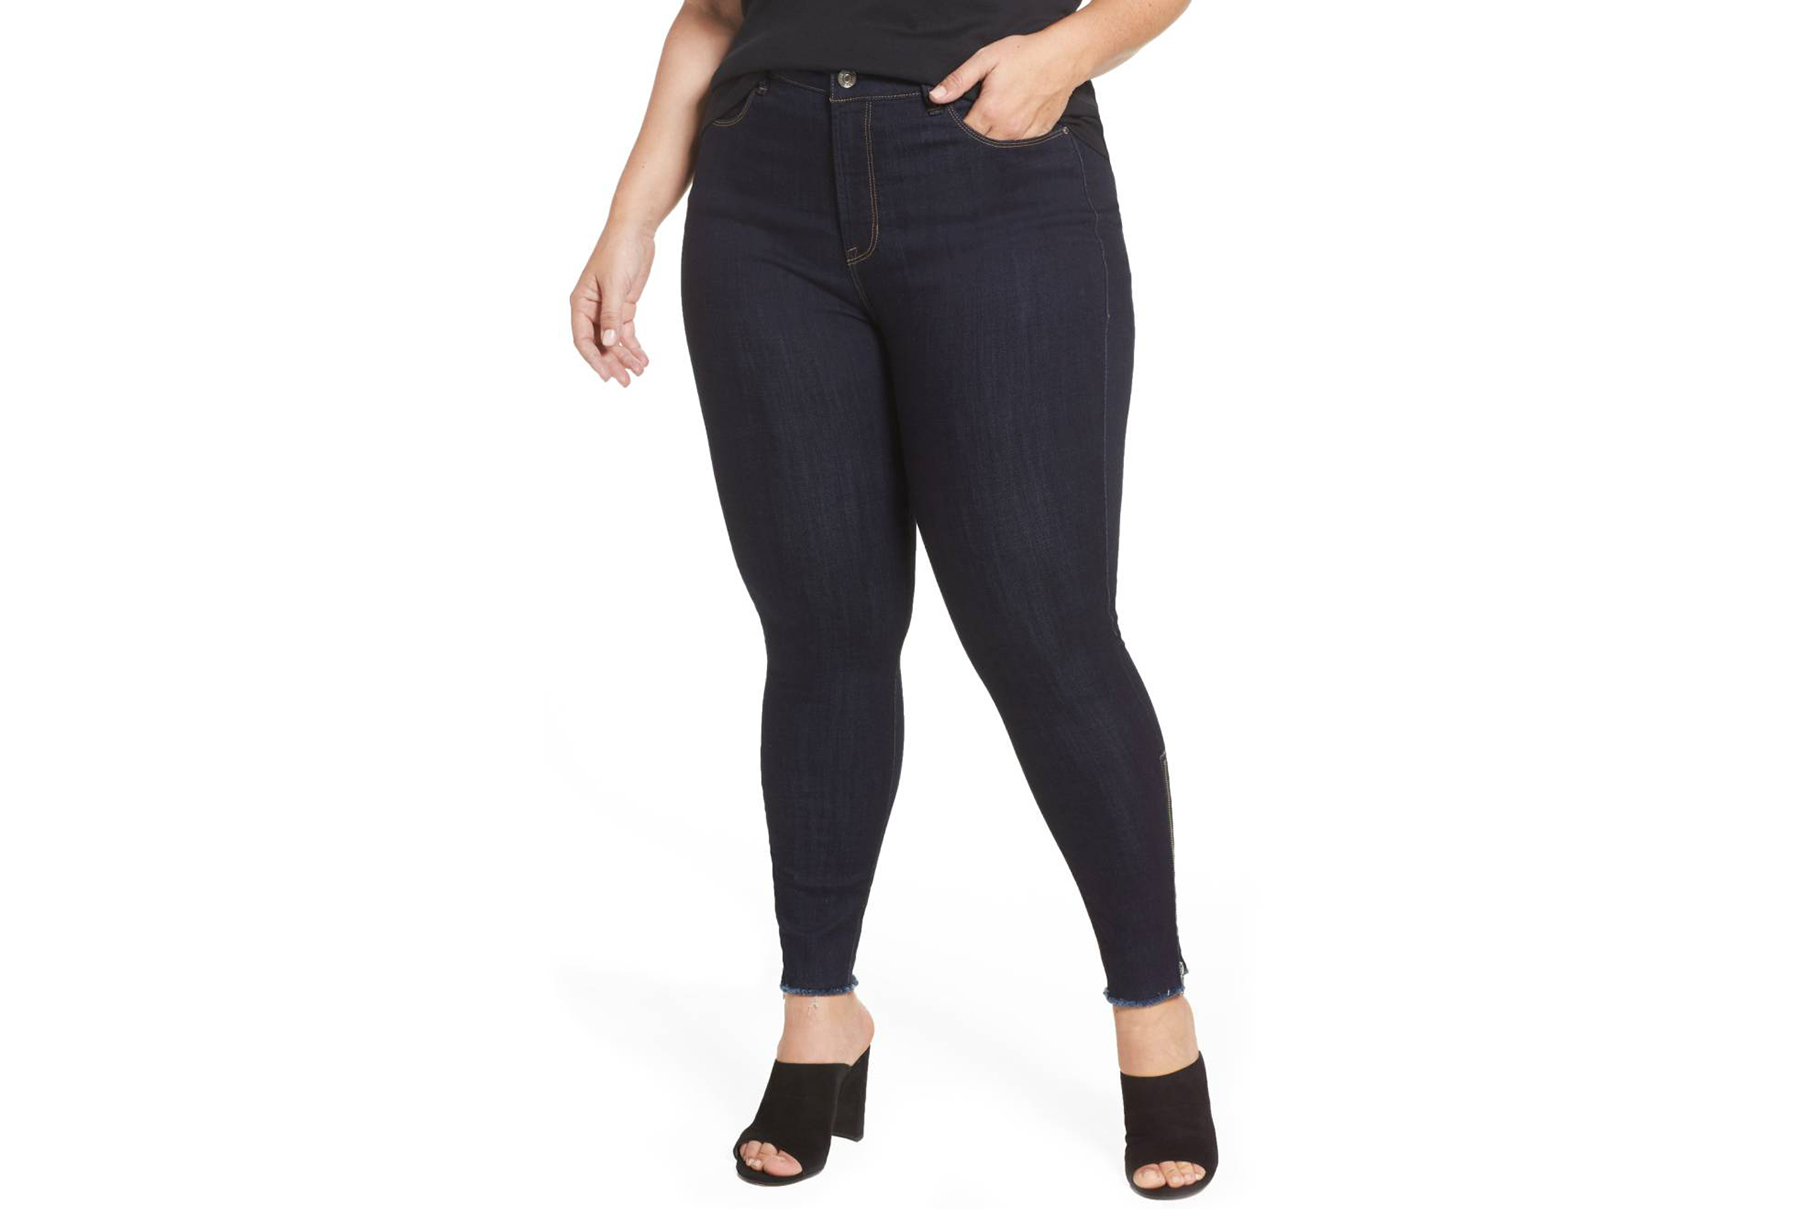 The Icon High Rise Super Skinny Jeans